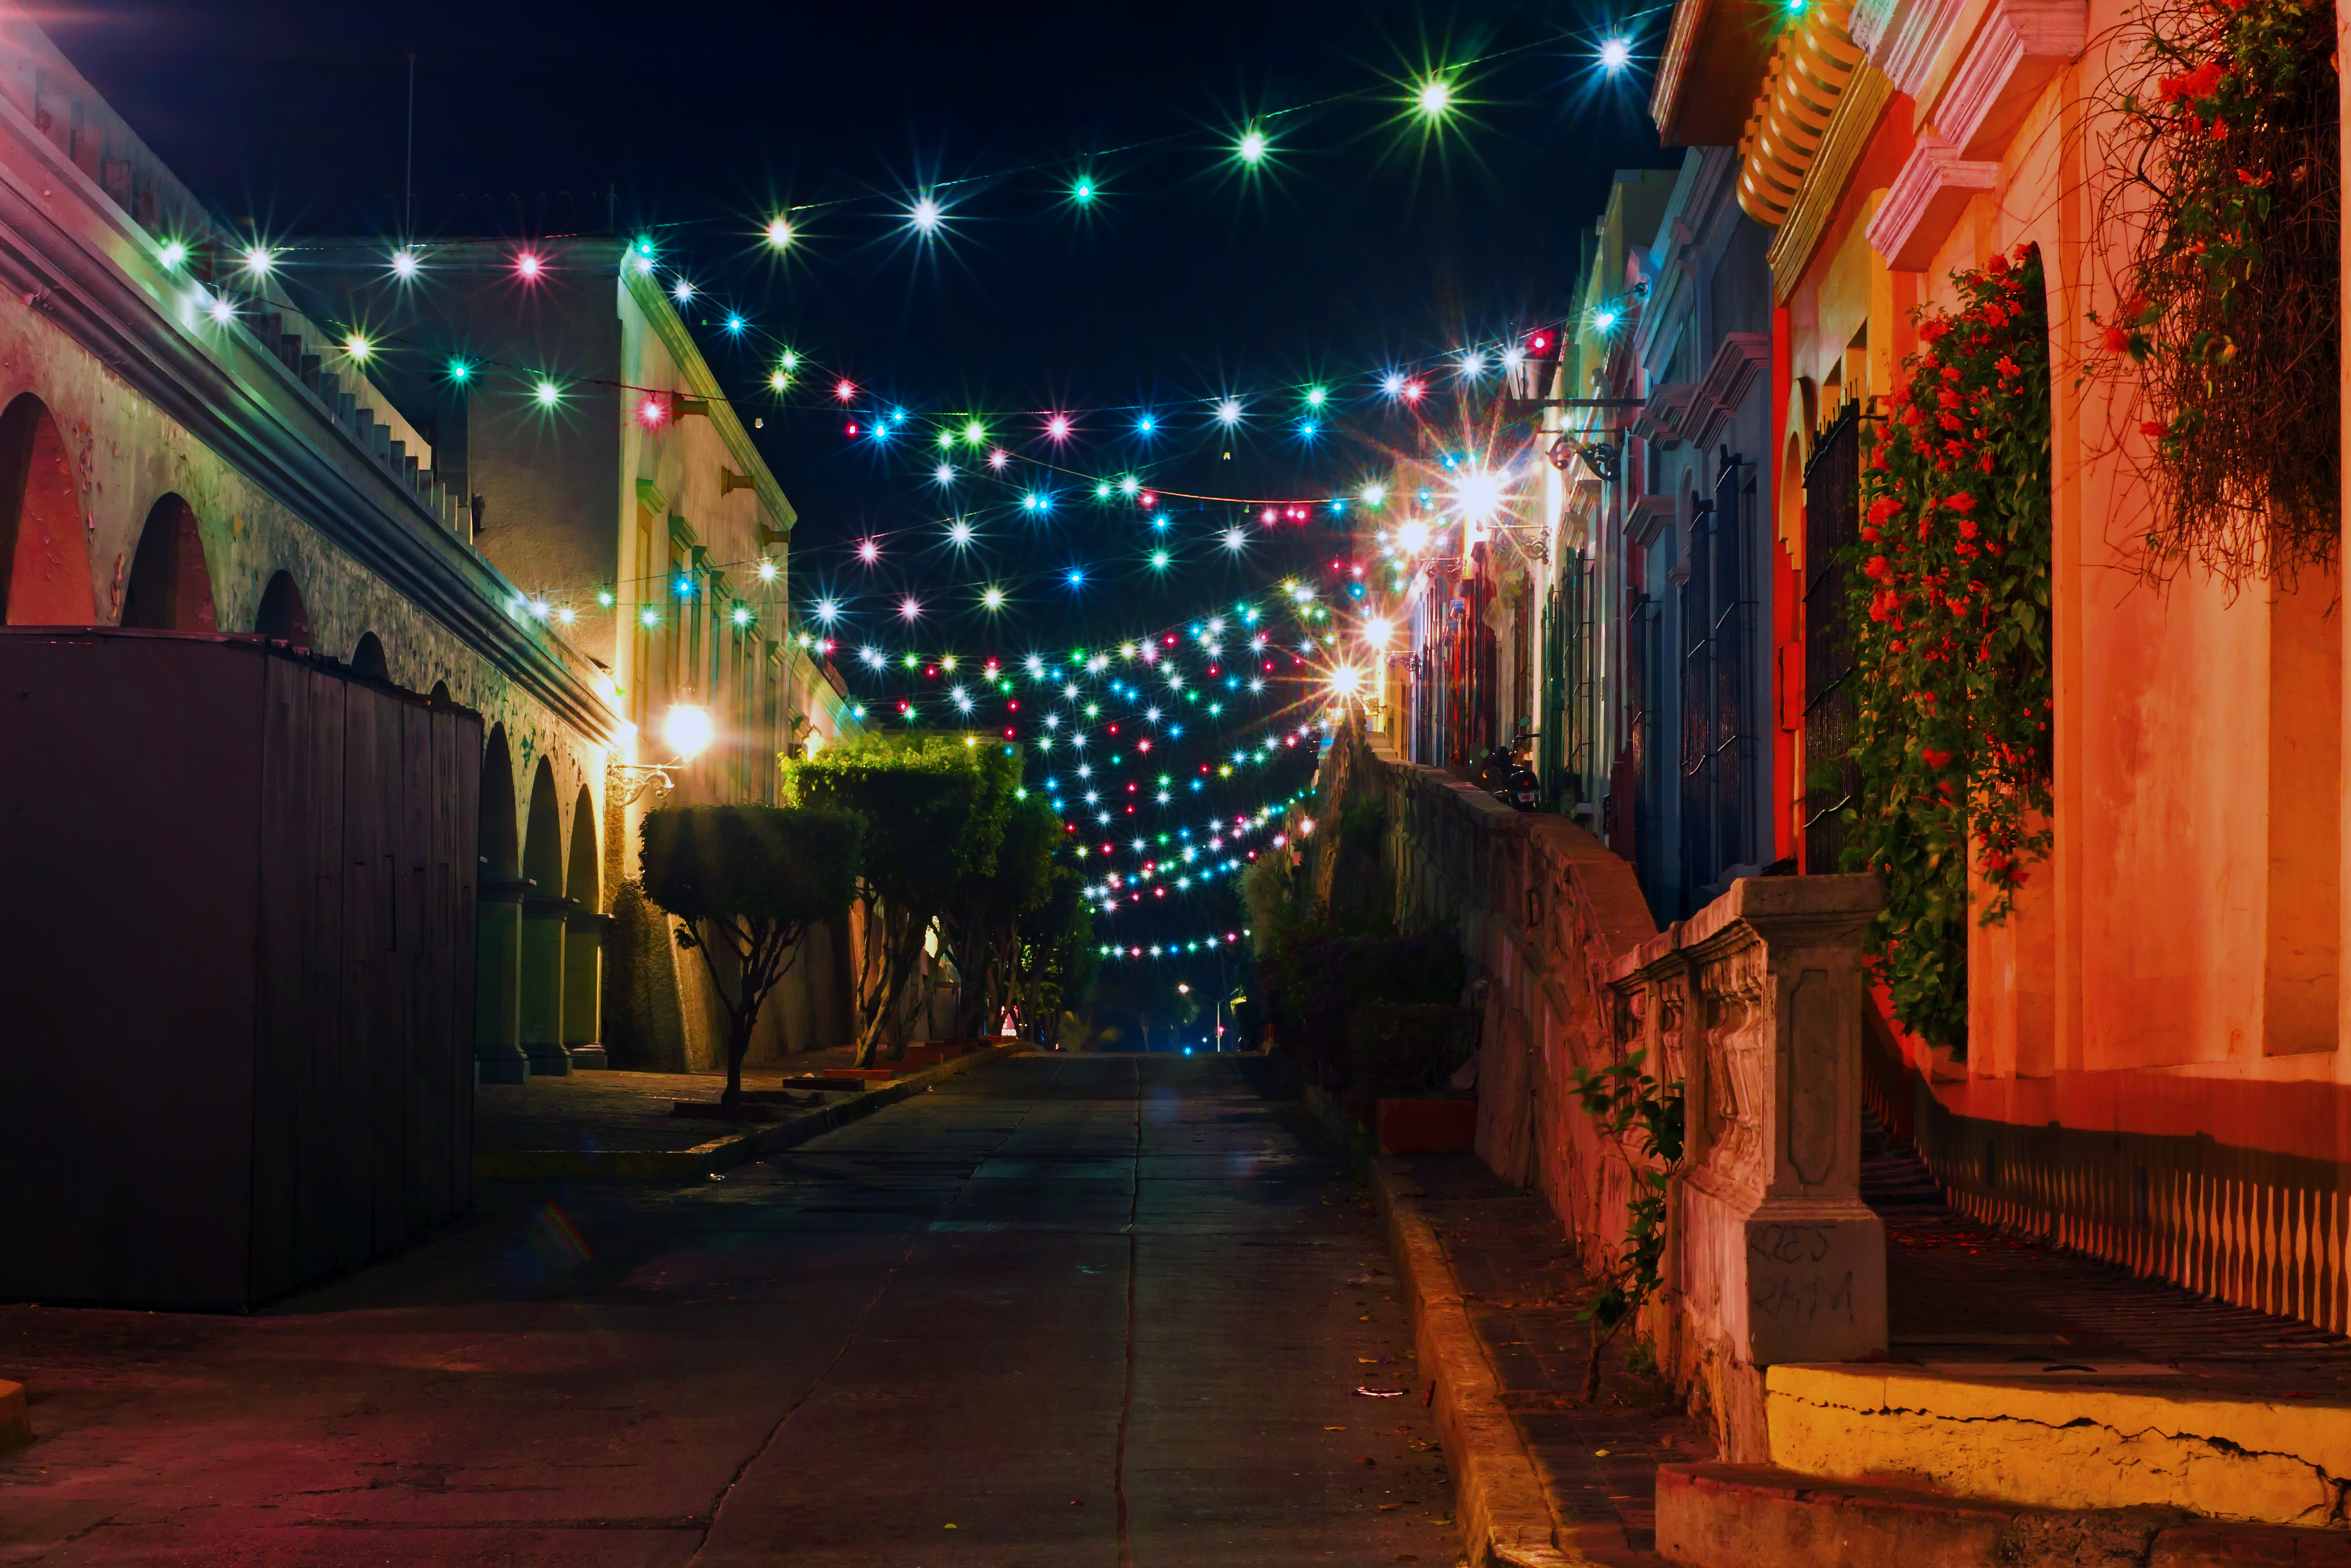 Empty alley with lights at night